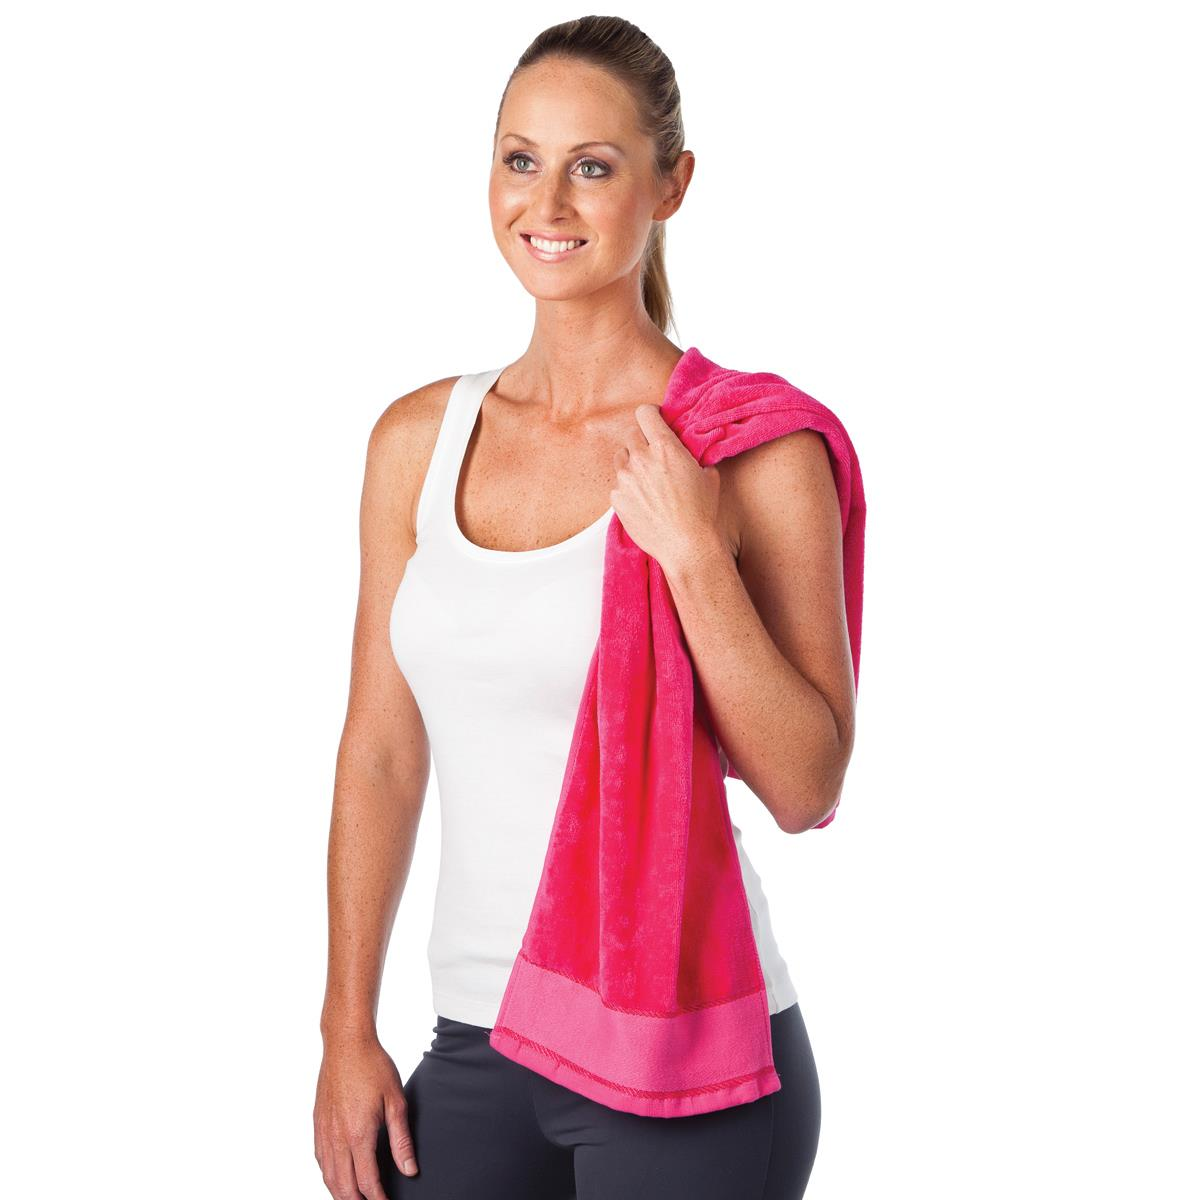 Best Gym Workout Towels: Workout/Fitness Towel